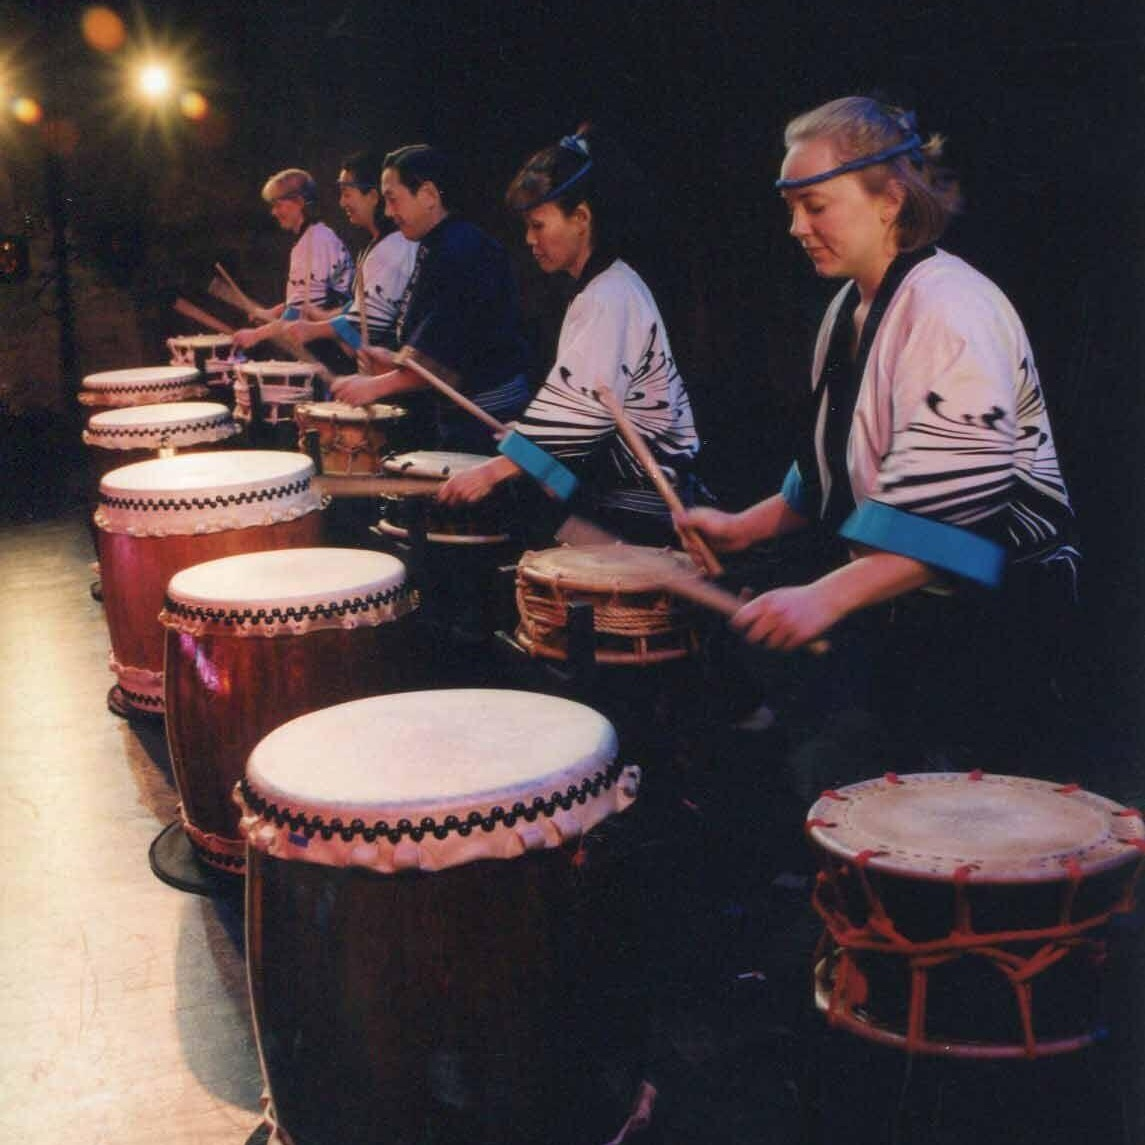 SNOW DRUMS OF MU DAIKO - Directed by RICK SHIOMINovember 22nd- December 1st, 2002